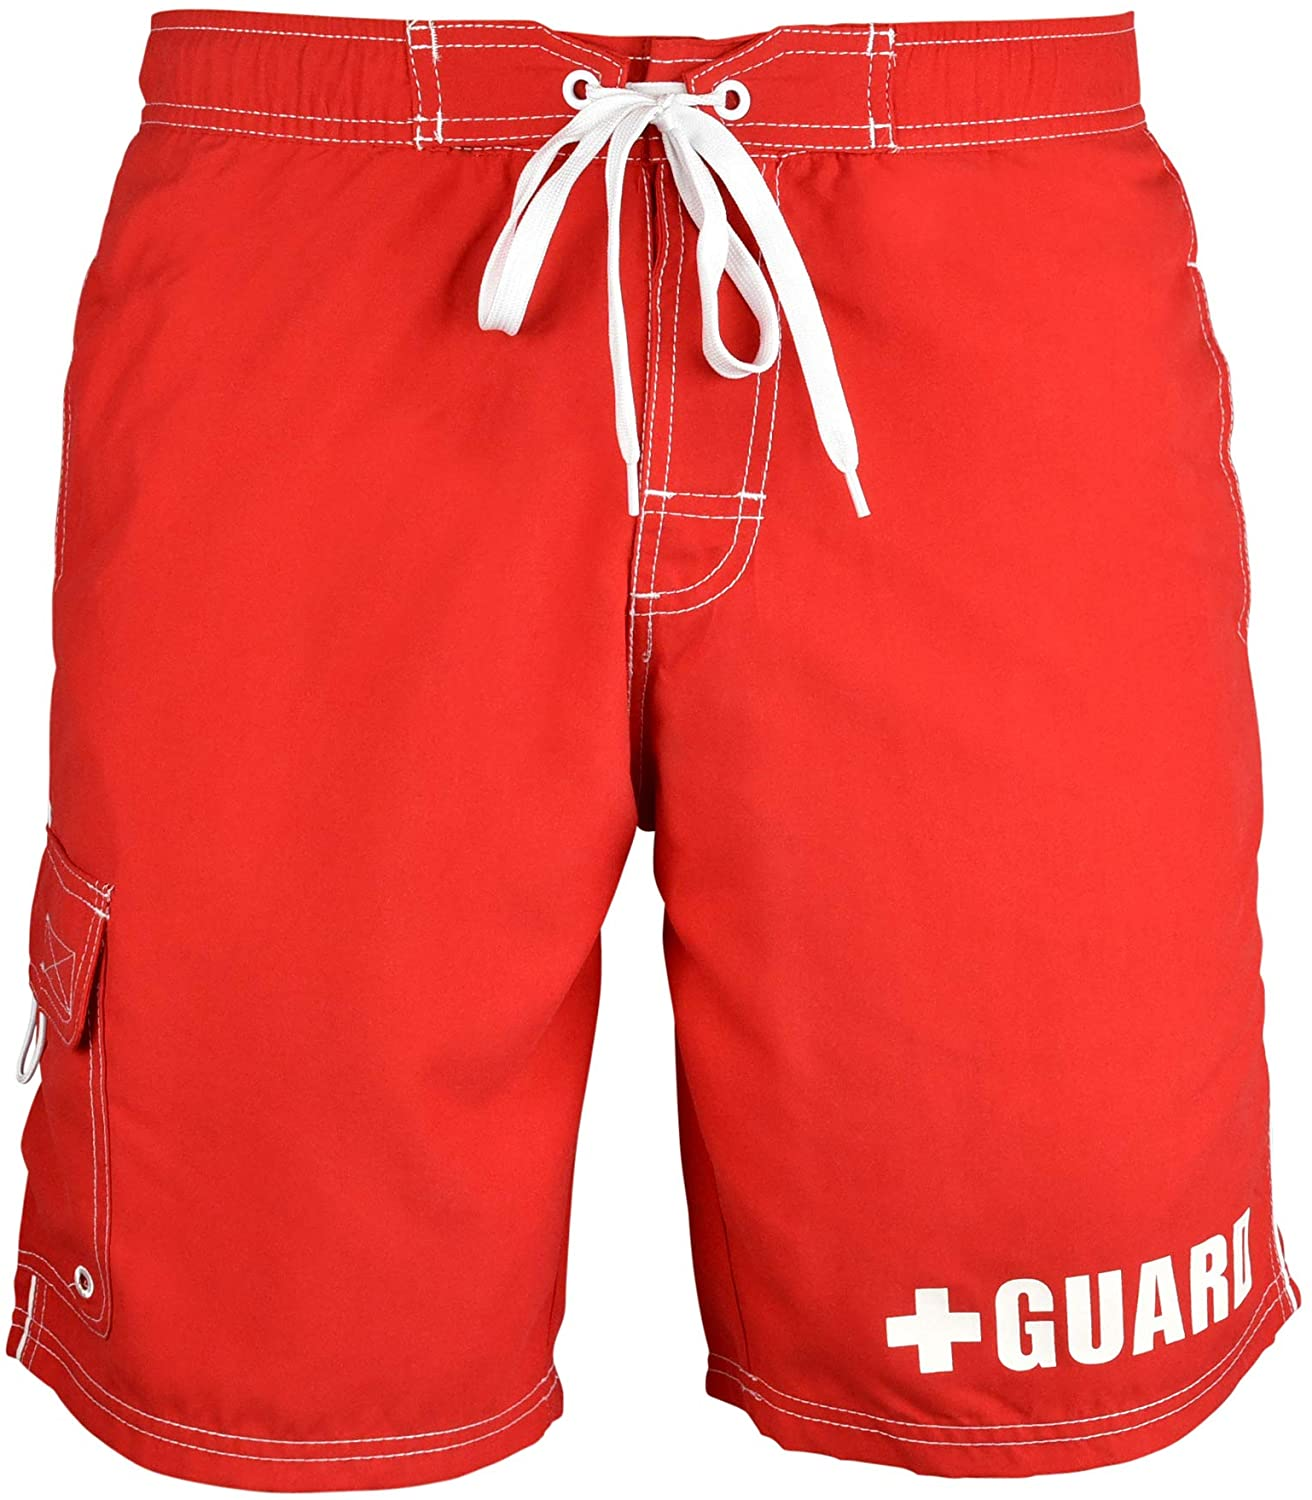 BLARIX Mens Guard Swim Trunks